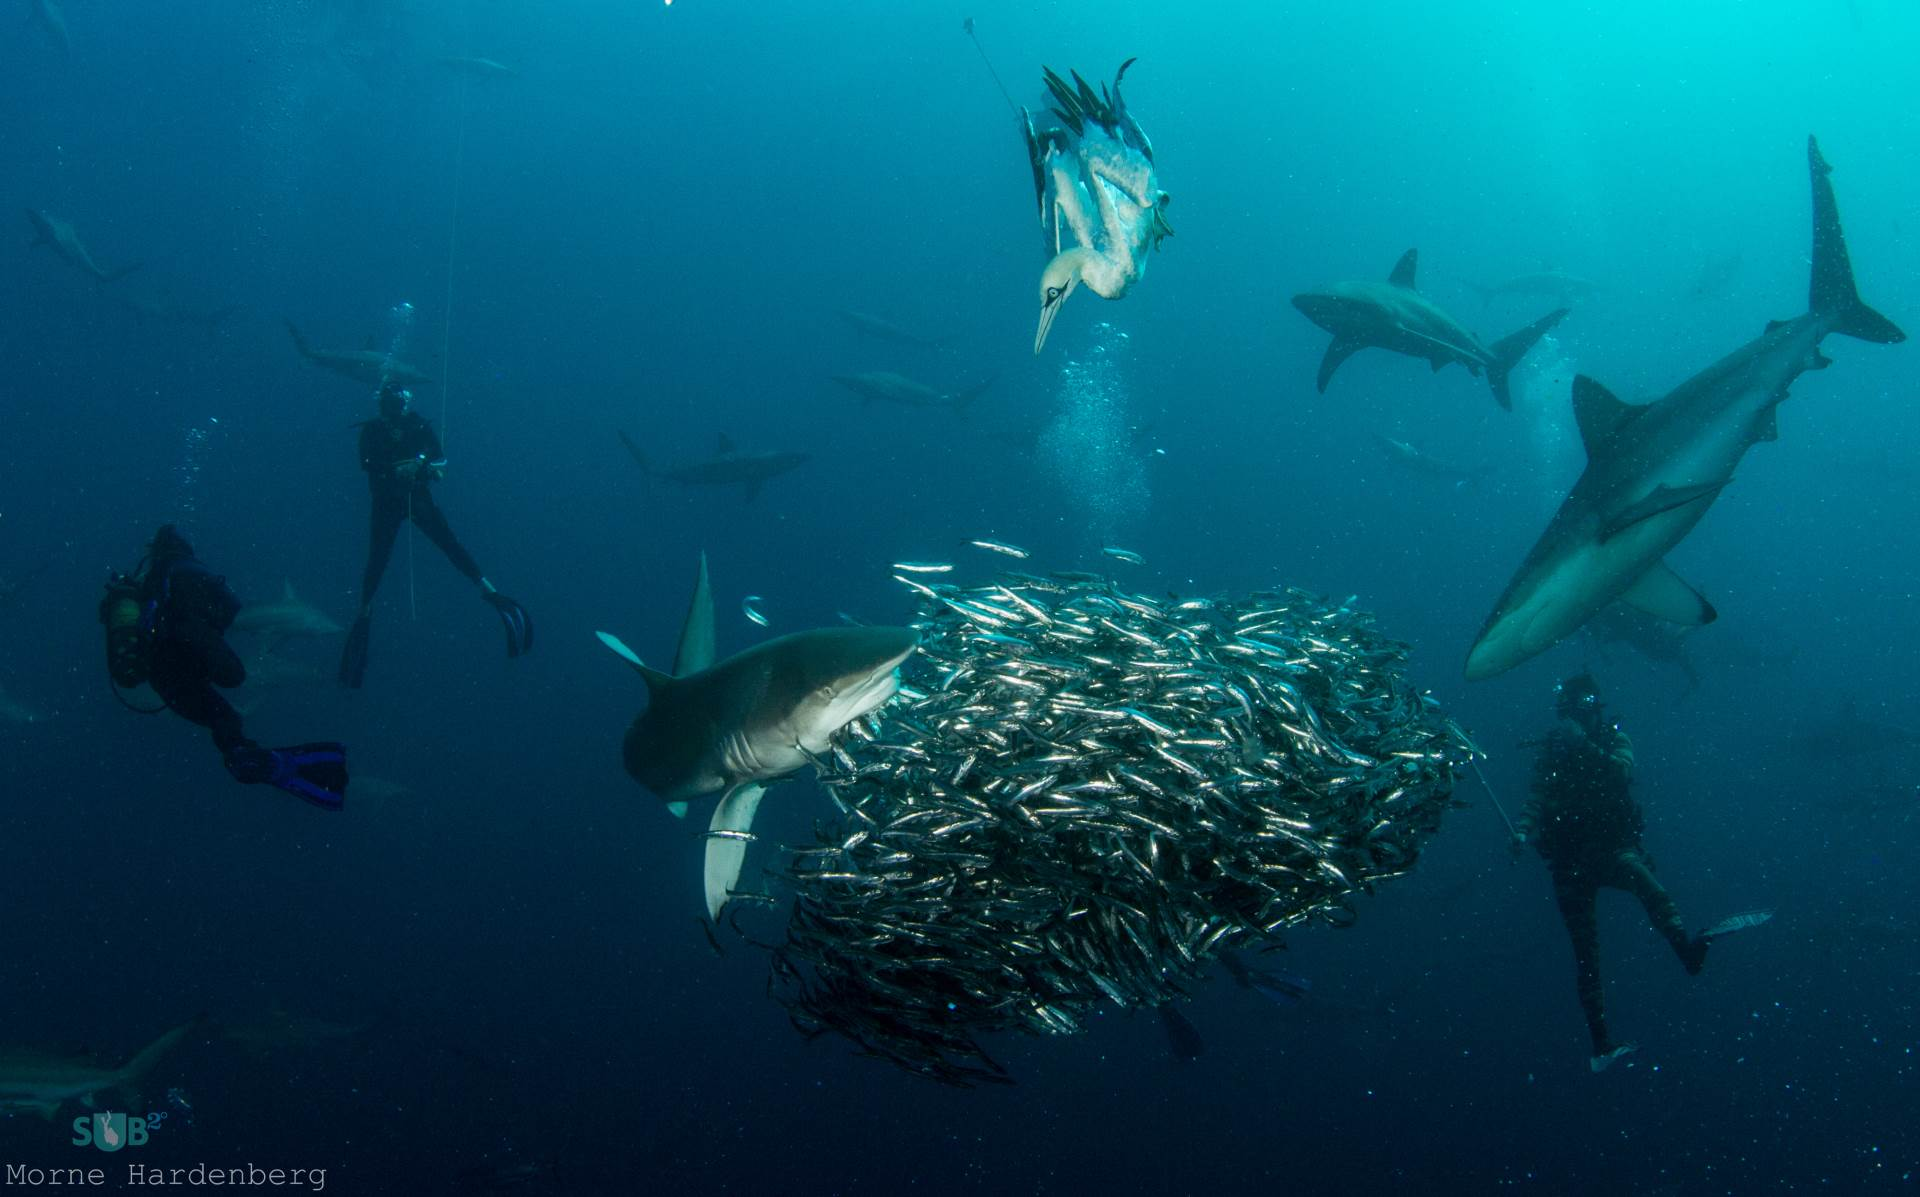 The melee of predators turn the ocean into a diver's dream come true.